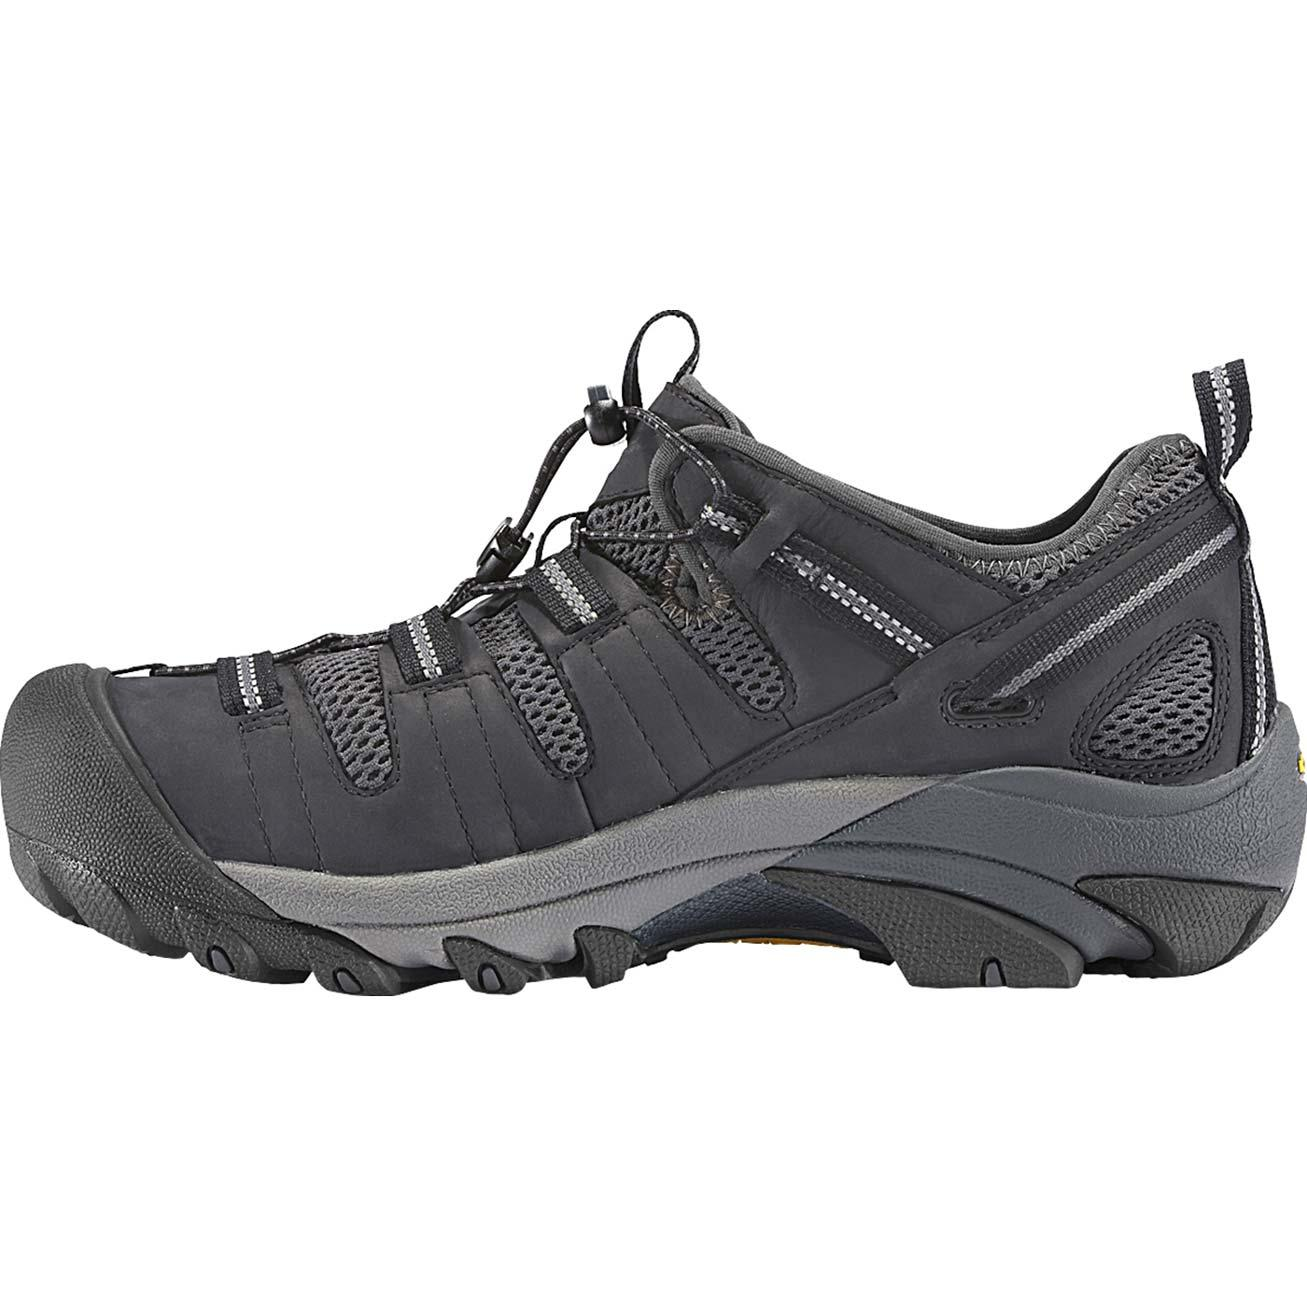 d4ac2ebcd04c44 Images. KEEN Utility® Atlanta Cool Steel Toe Work Athletic Shoe ...